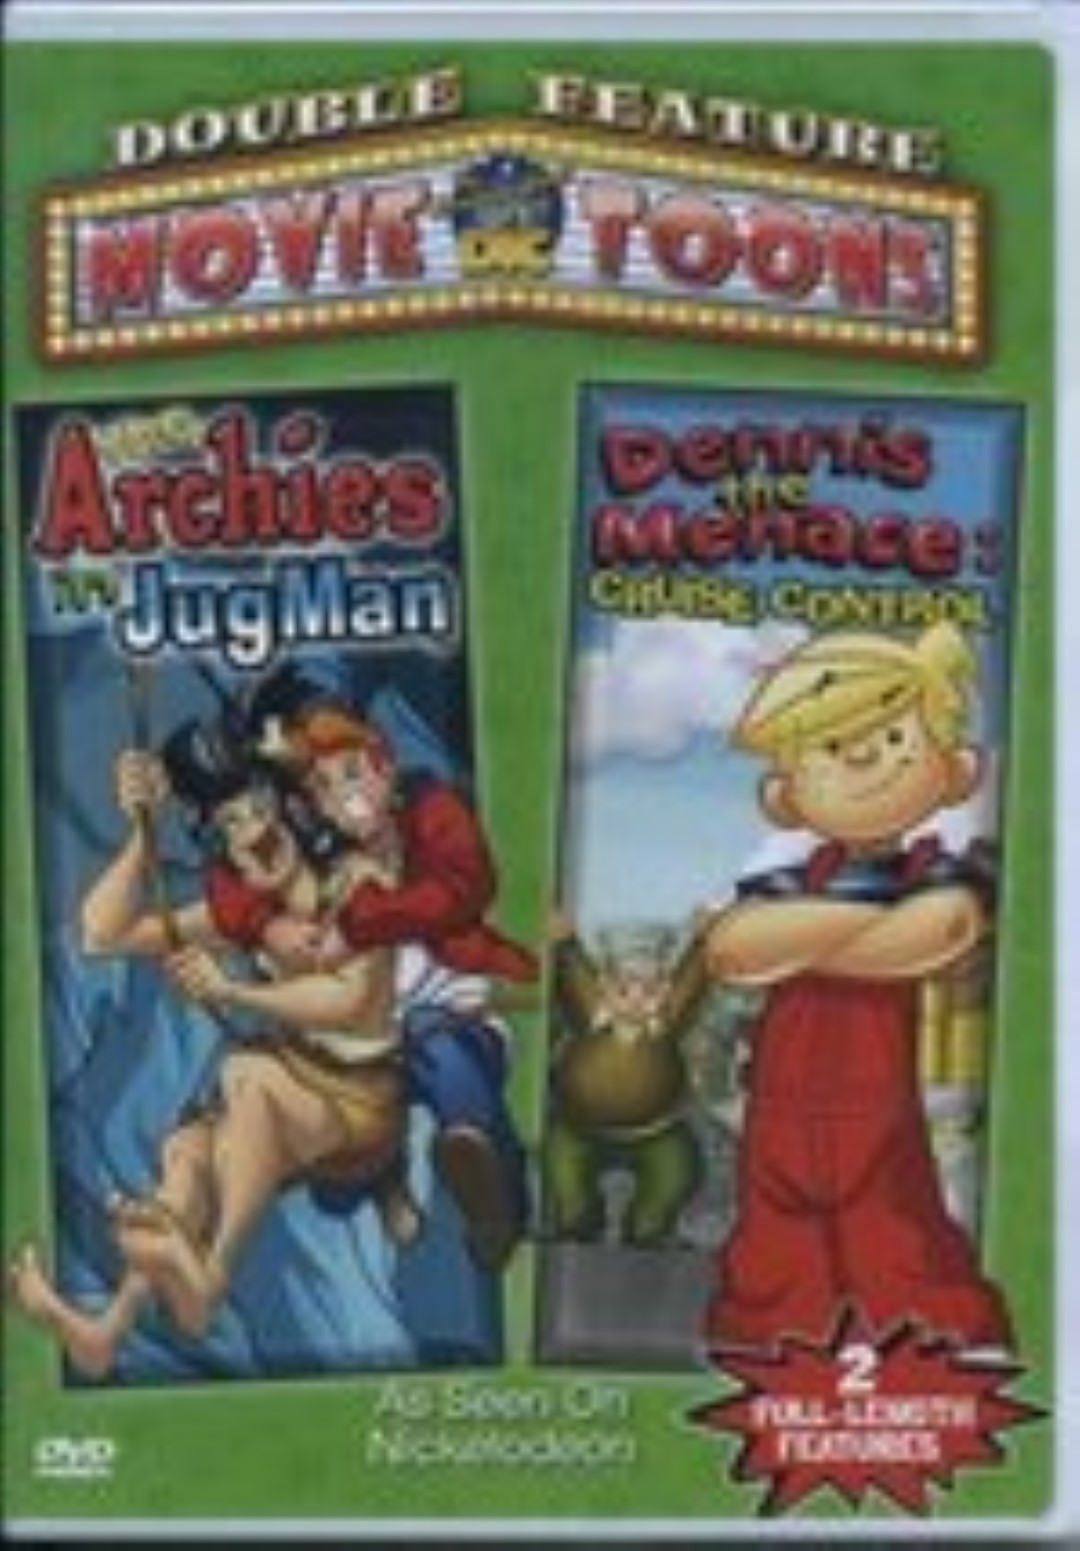 Archies: Jugman / Dennis The Menace: Cruise Control Dvd